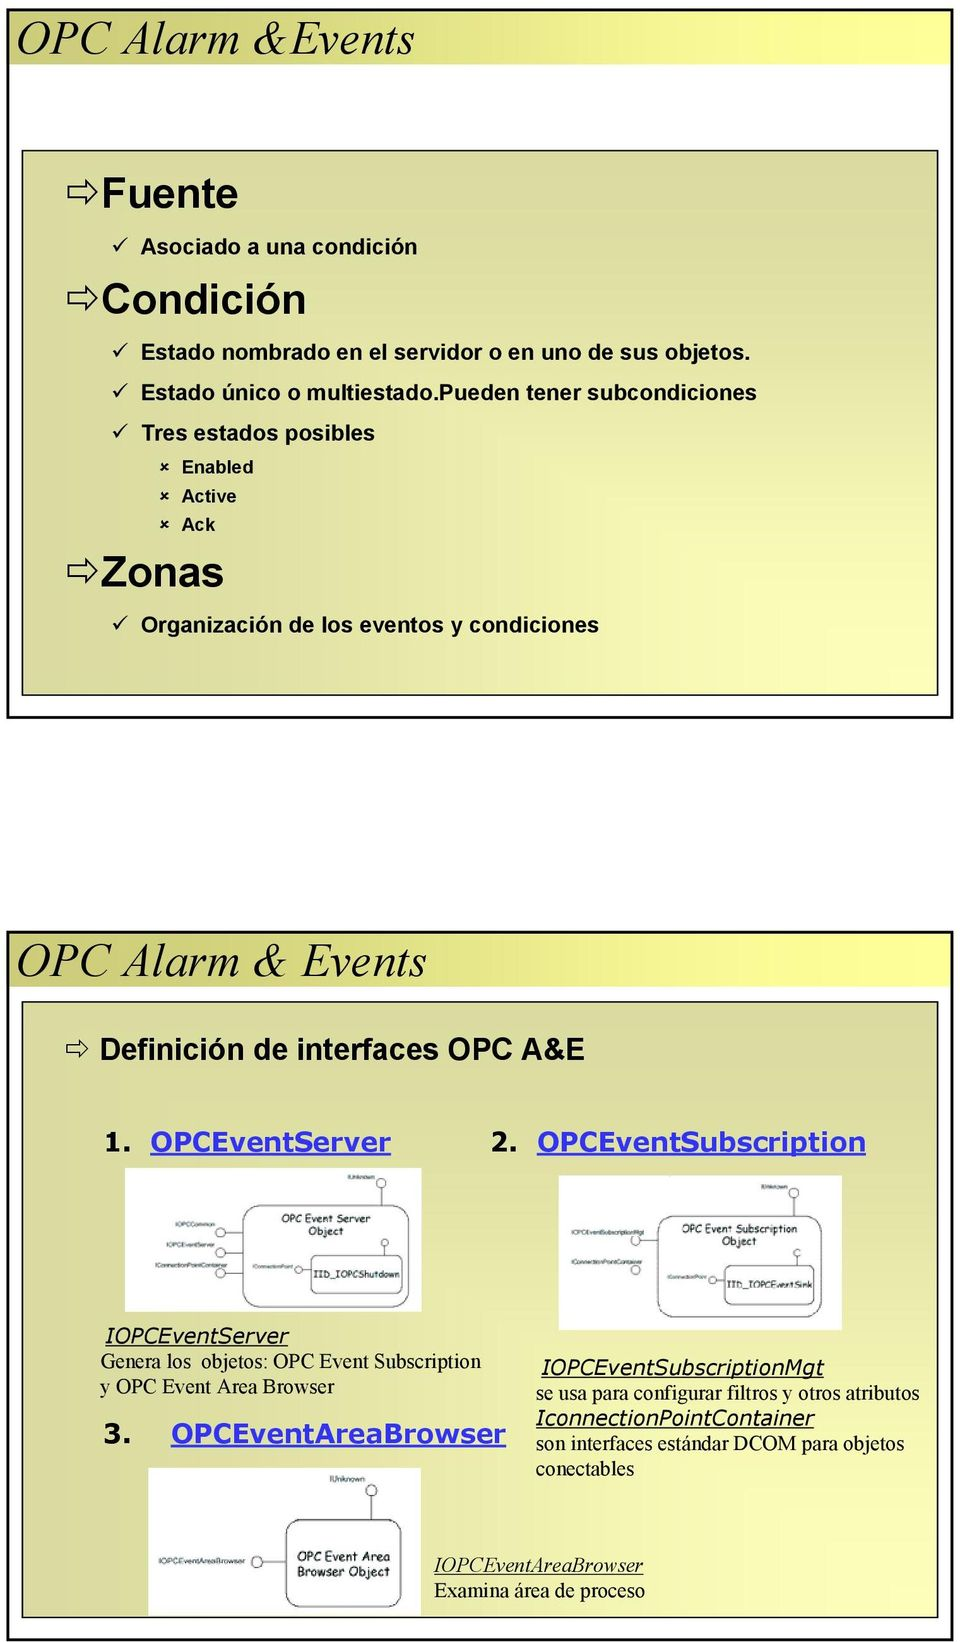 A&E 1. OPCEventServer 2. OPCEventSubscription IOPCEventServer Genera los objetos: OPC Event Subscription y OPC Event Area Browser 3.